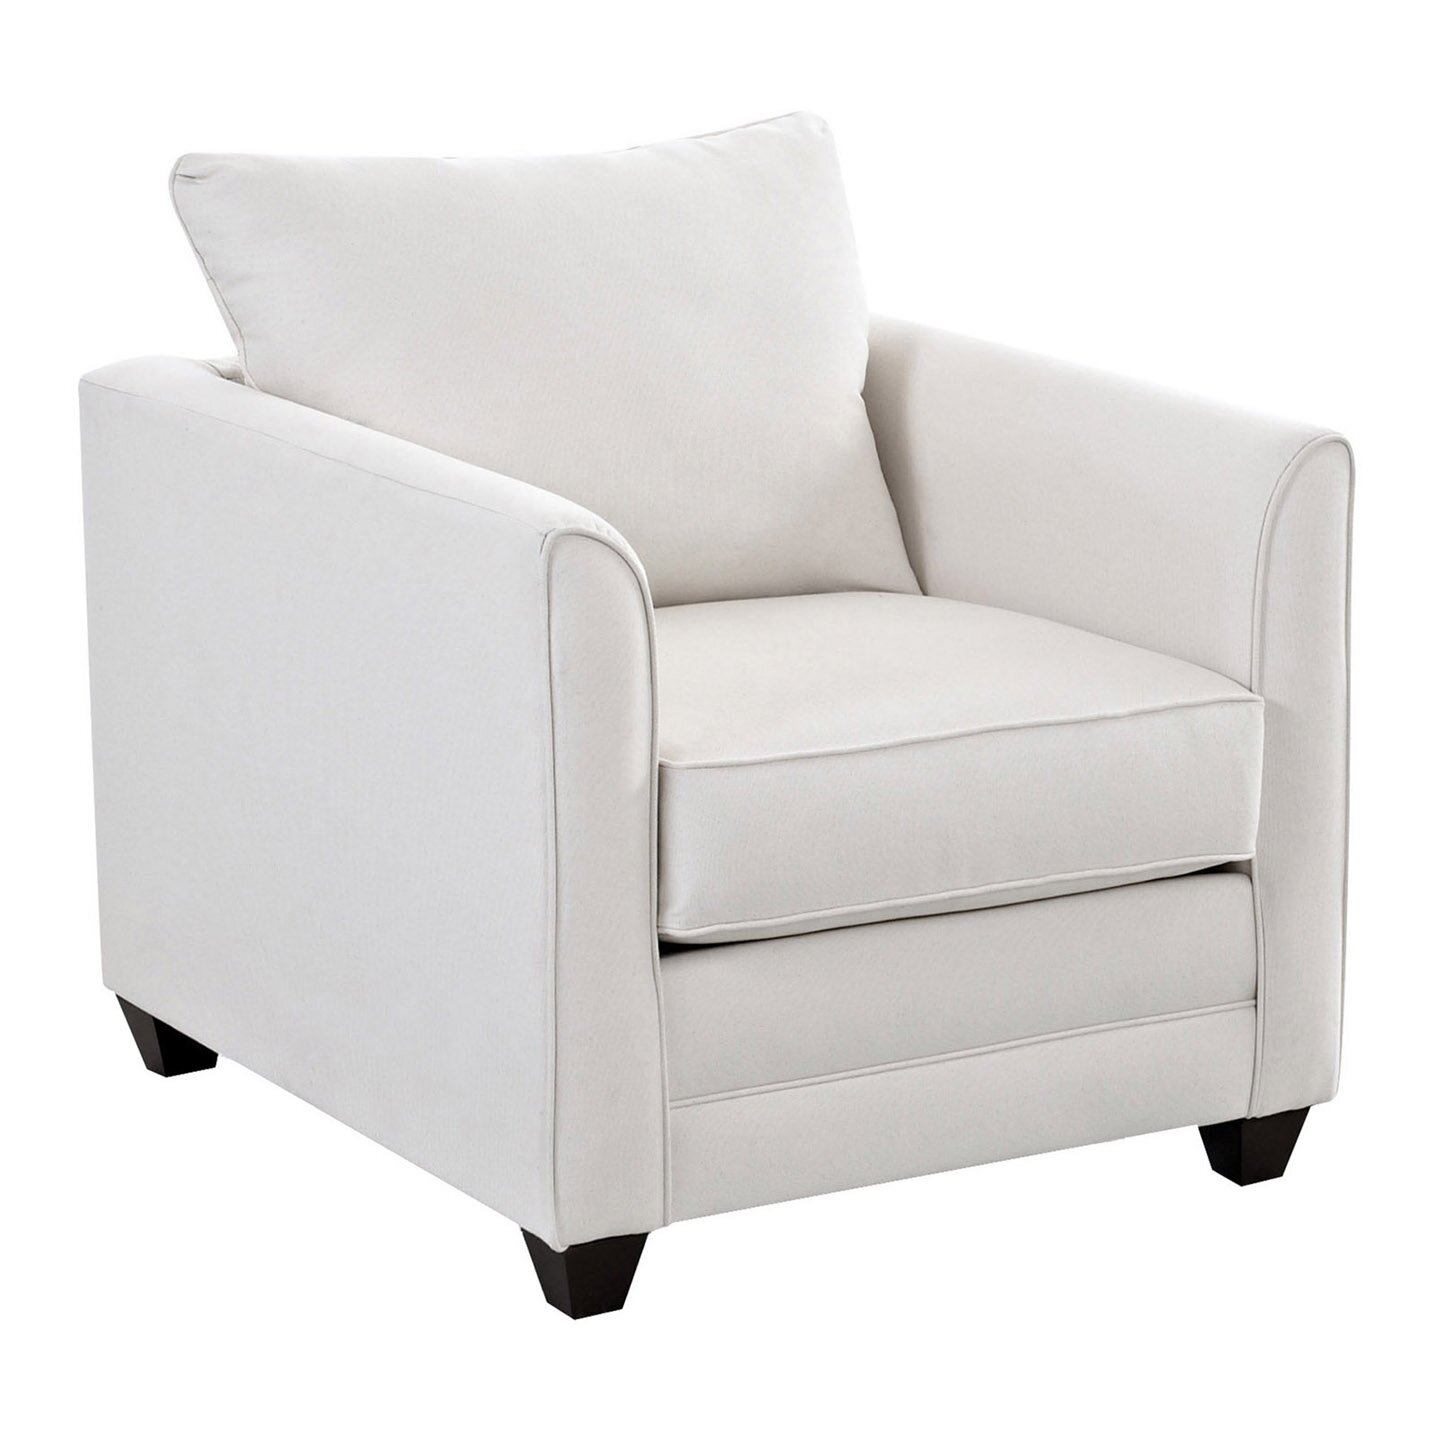 Wayfair Com Sales: Wayfair Custom Upholstery Sarah Arm Chair & Reviews